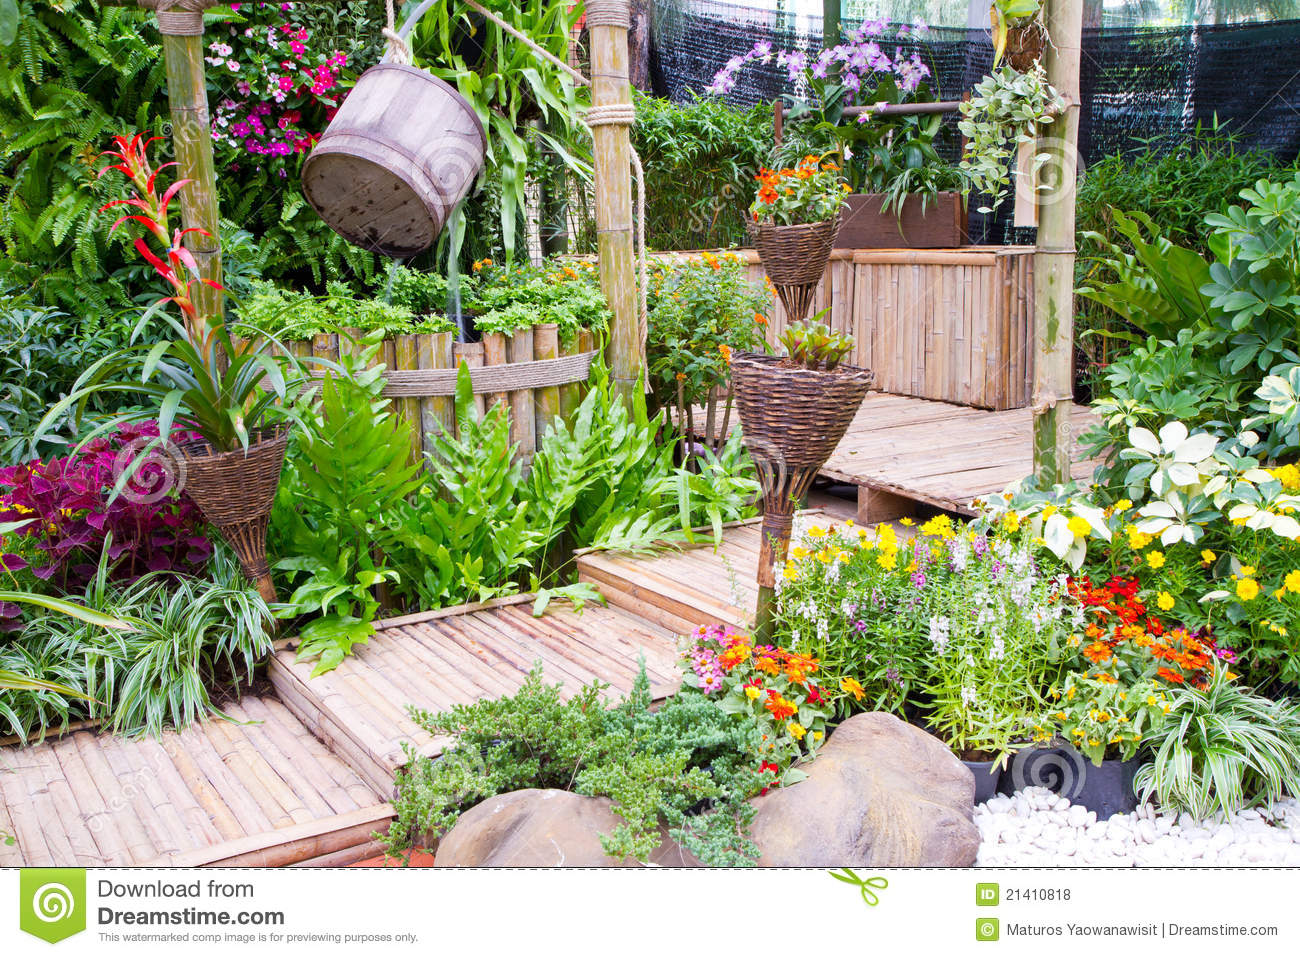 Beautiful Small Gardens beautiful small garden royalty free stock photos - image: 21410818